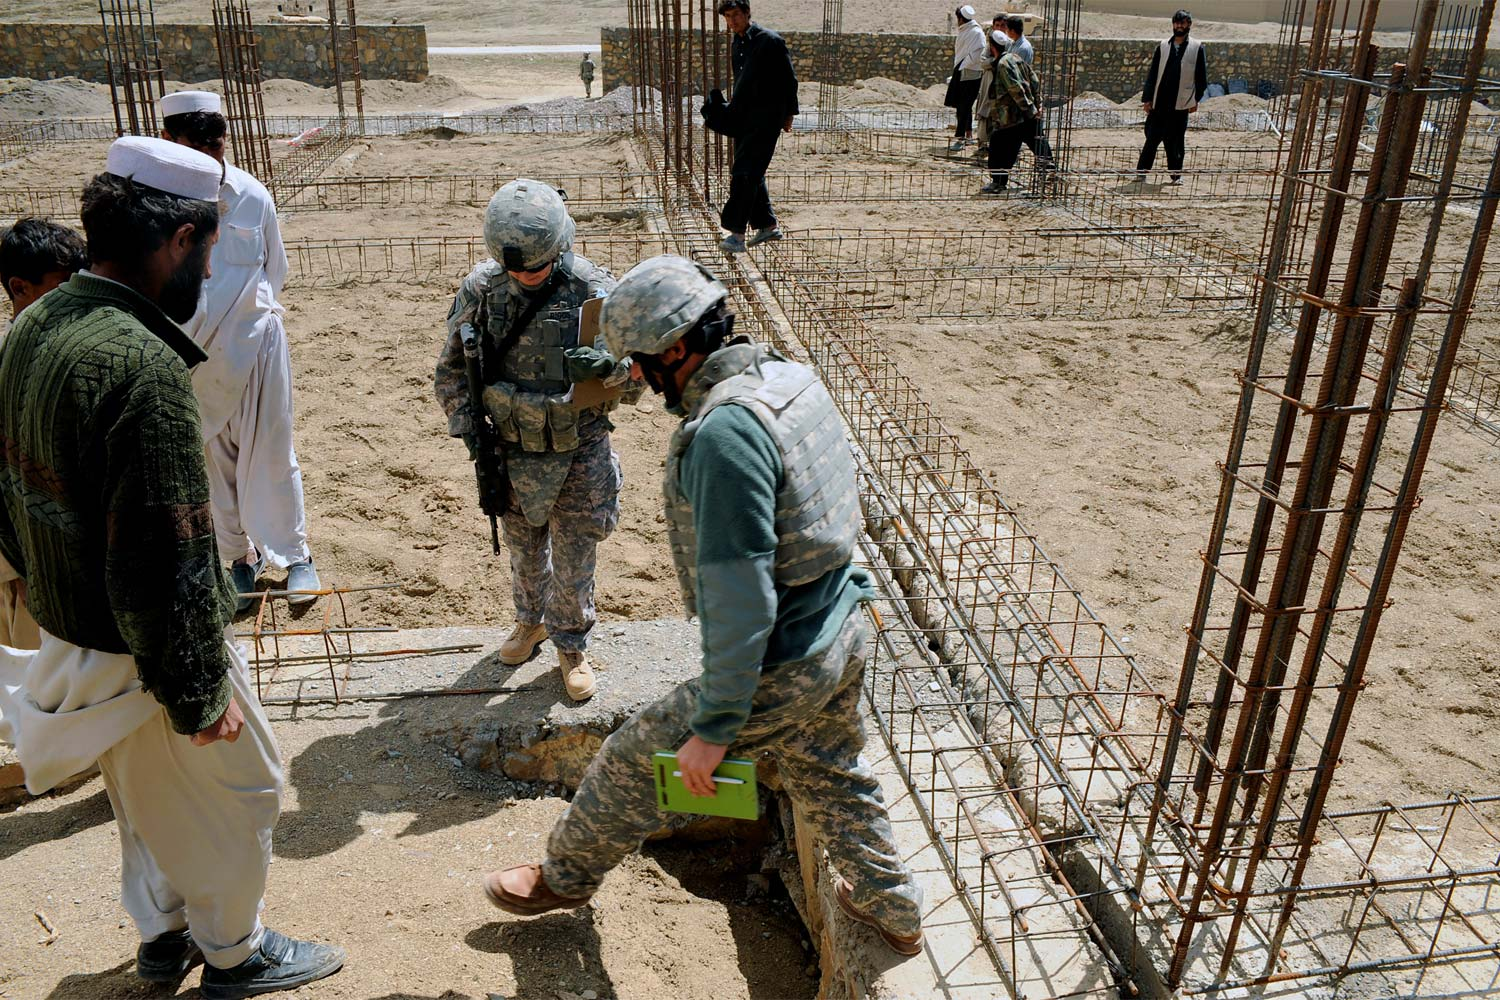 corruption in afghanistan The us has spent $100 billion in nonmilitary funds to rebuild afghanistan yet, after a decade of mind-bending mismanagement and unaccountability, it seems all for naught.